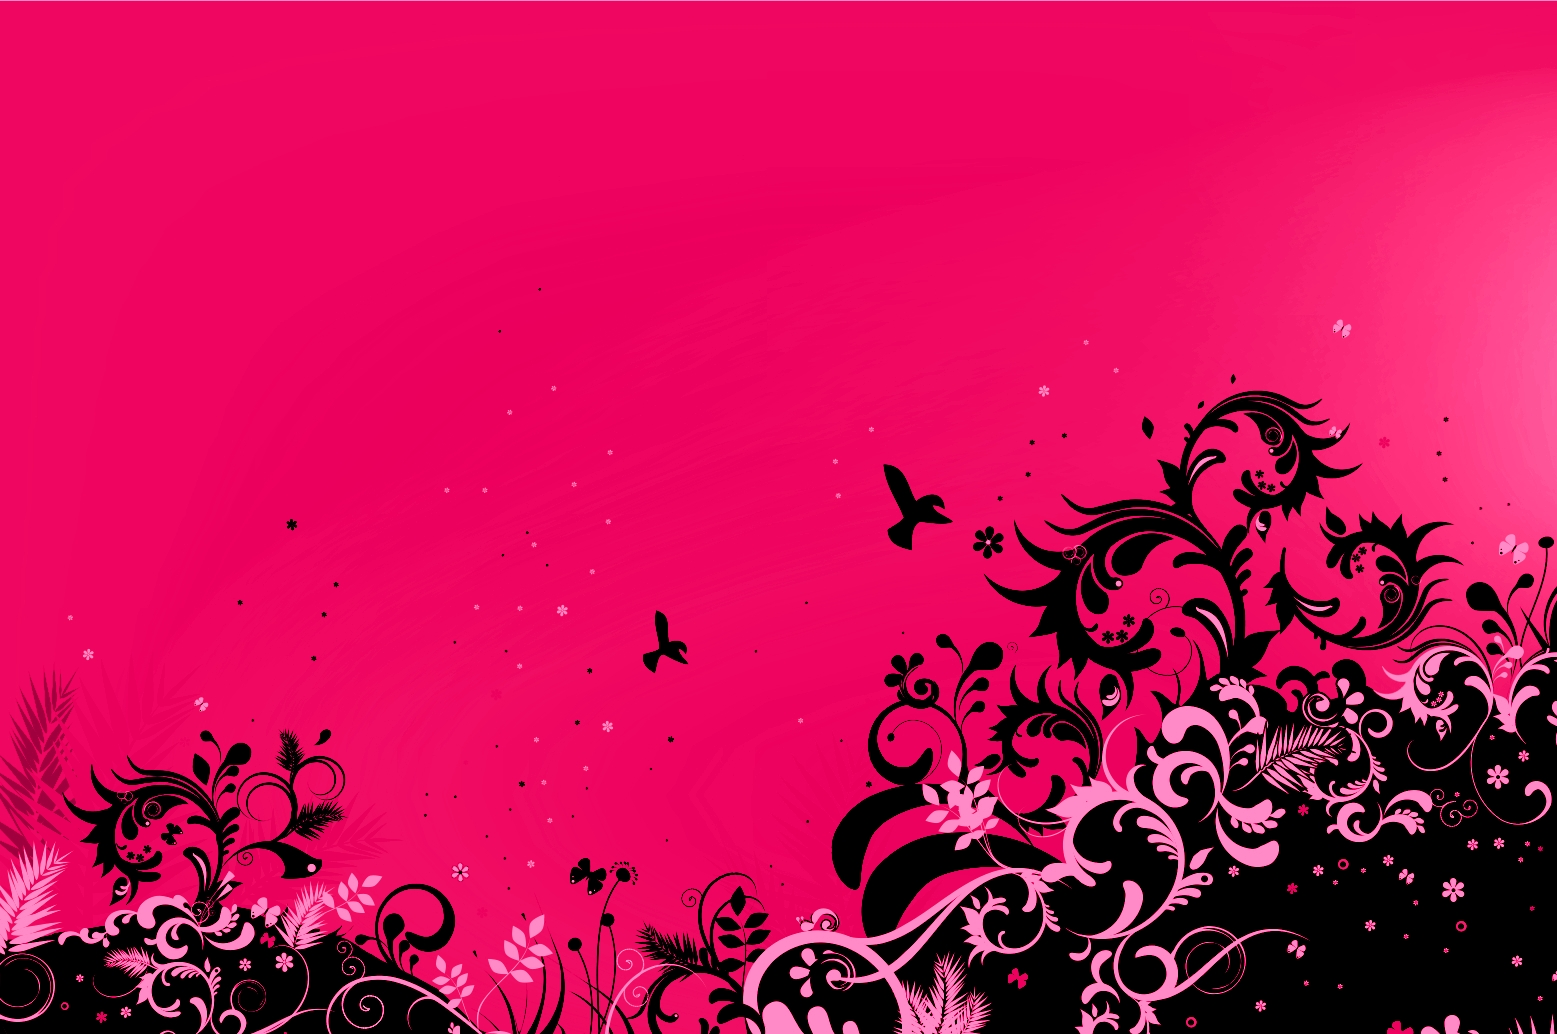 Pink Wallpaper 15628 1557x1034 px ~ HDWallSource.com